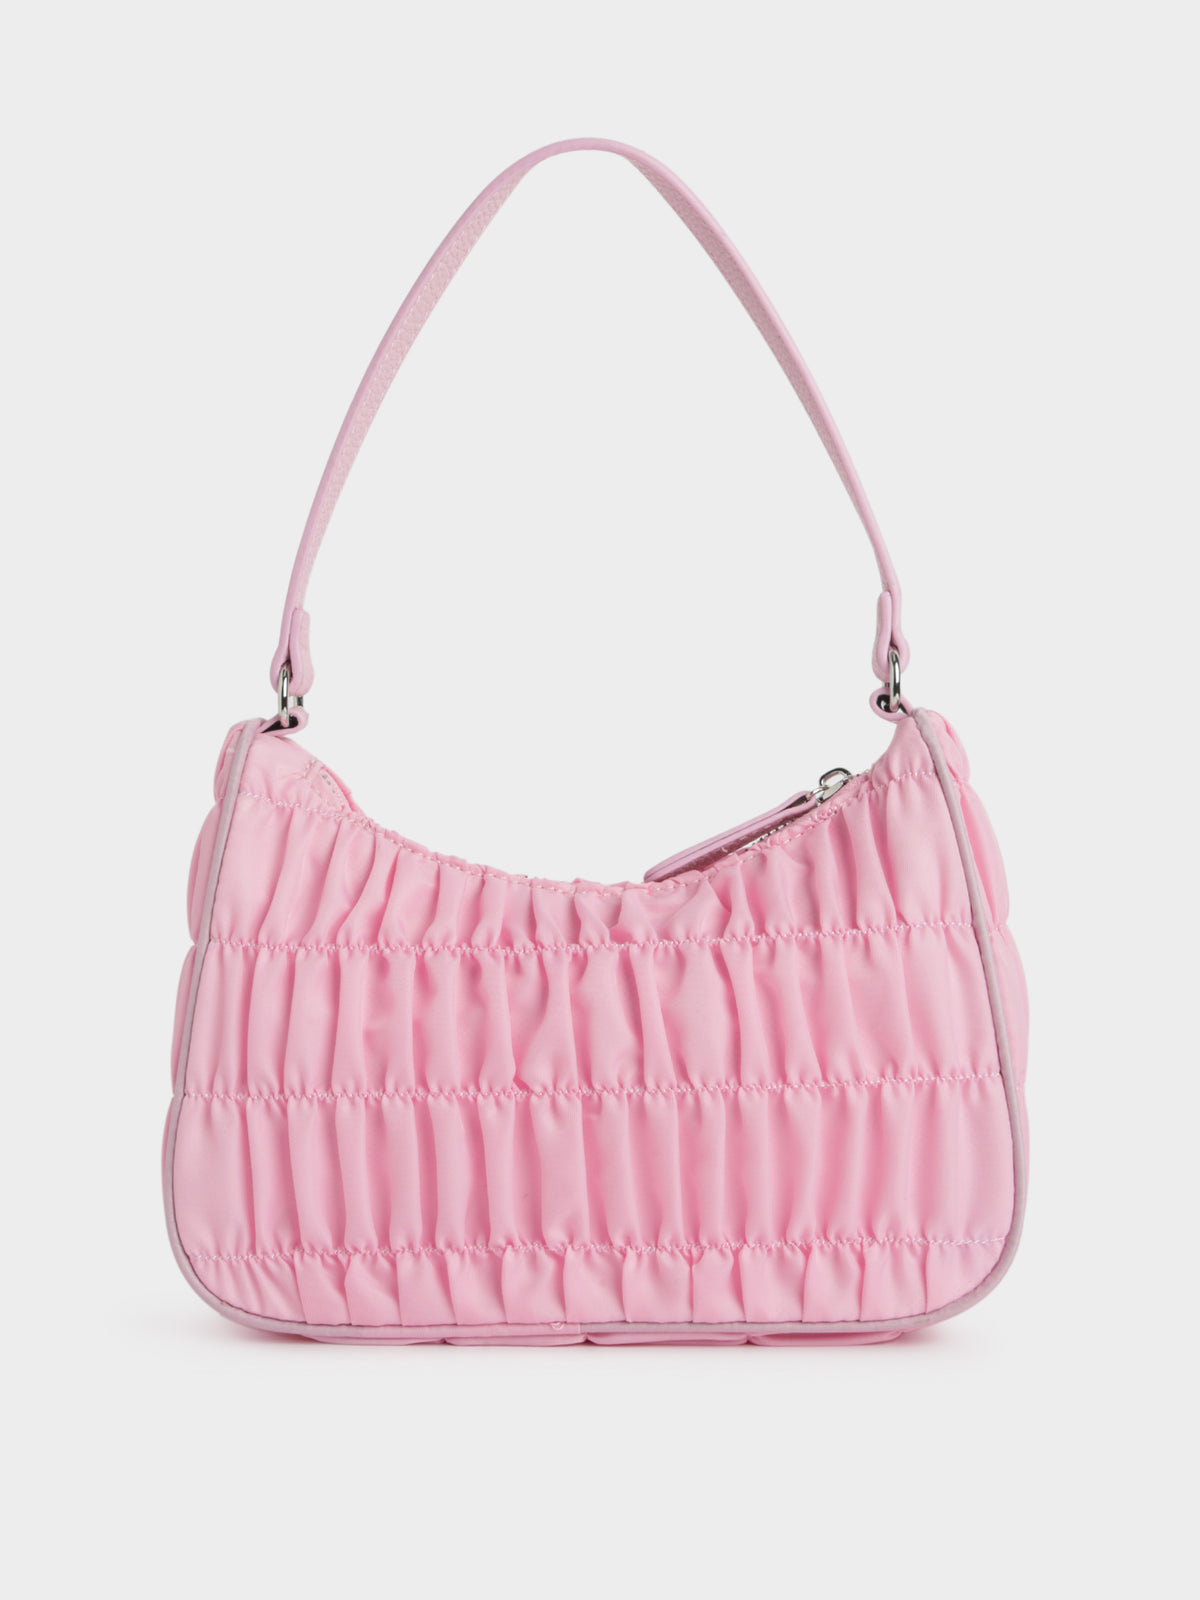 Tyra Shoulder Bag in Pink